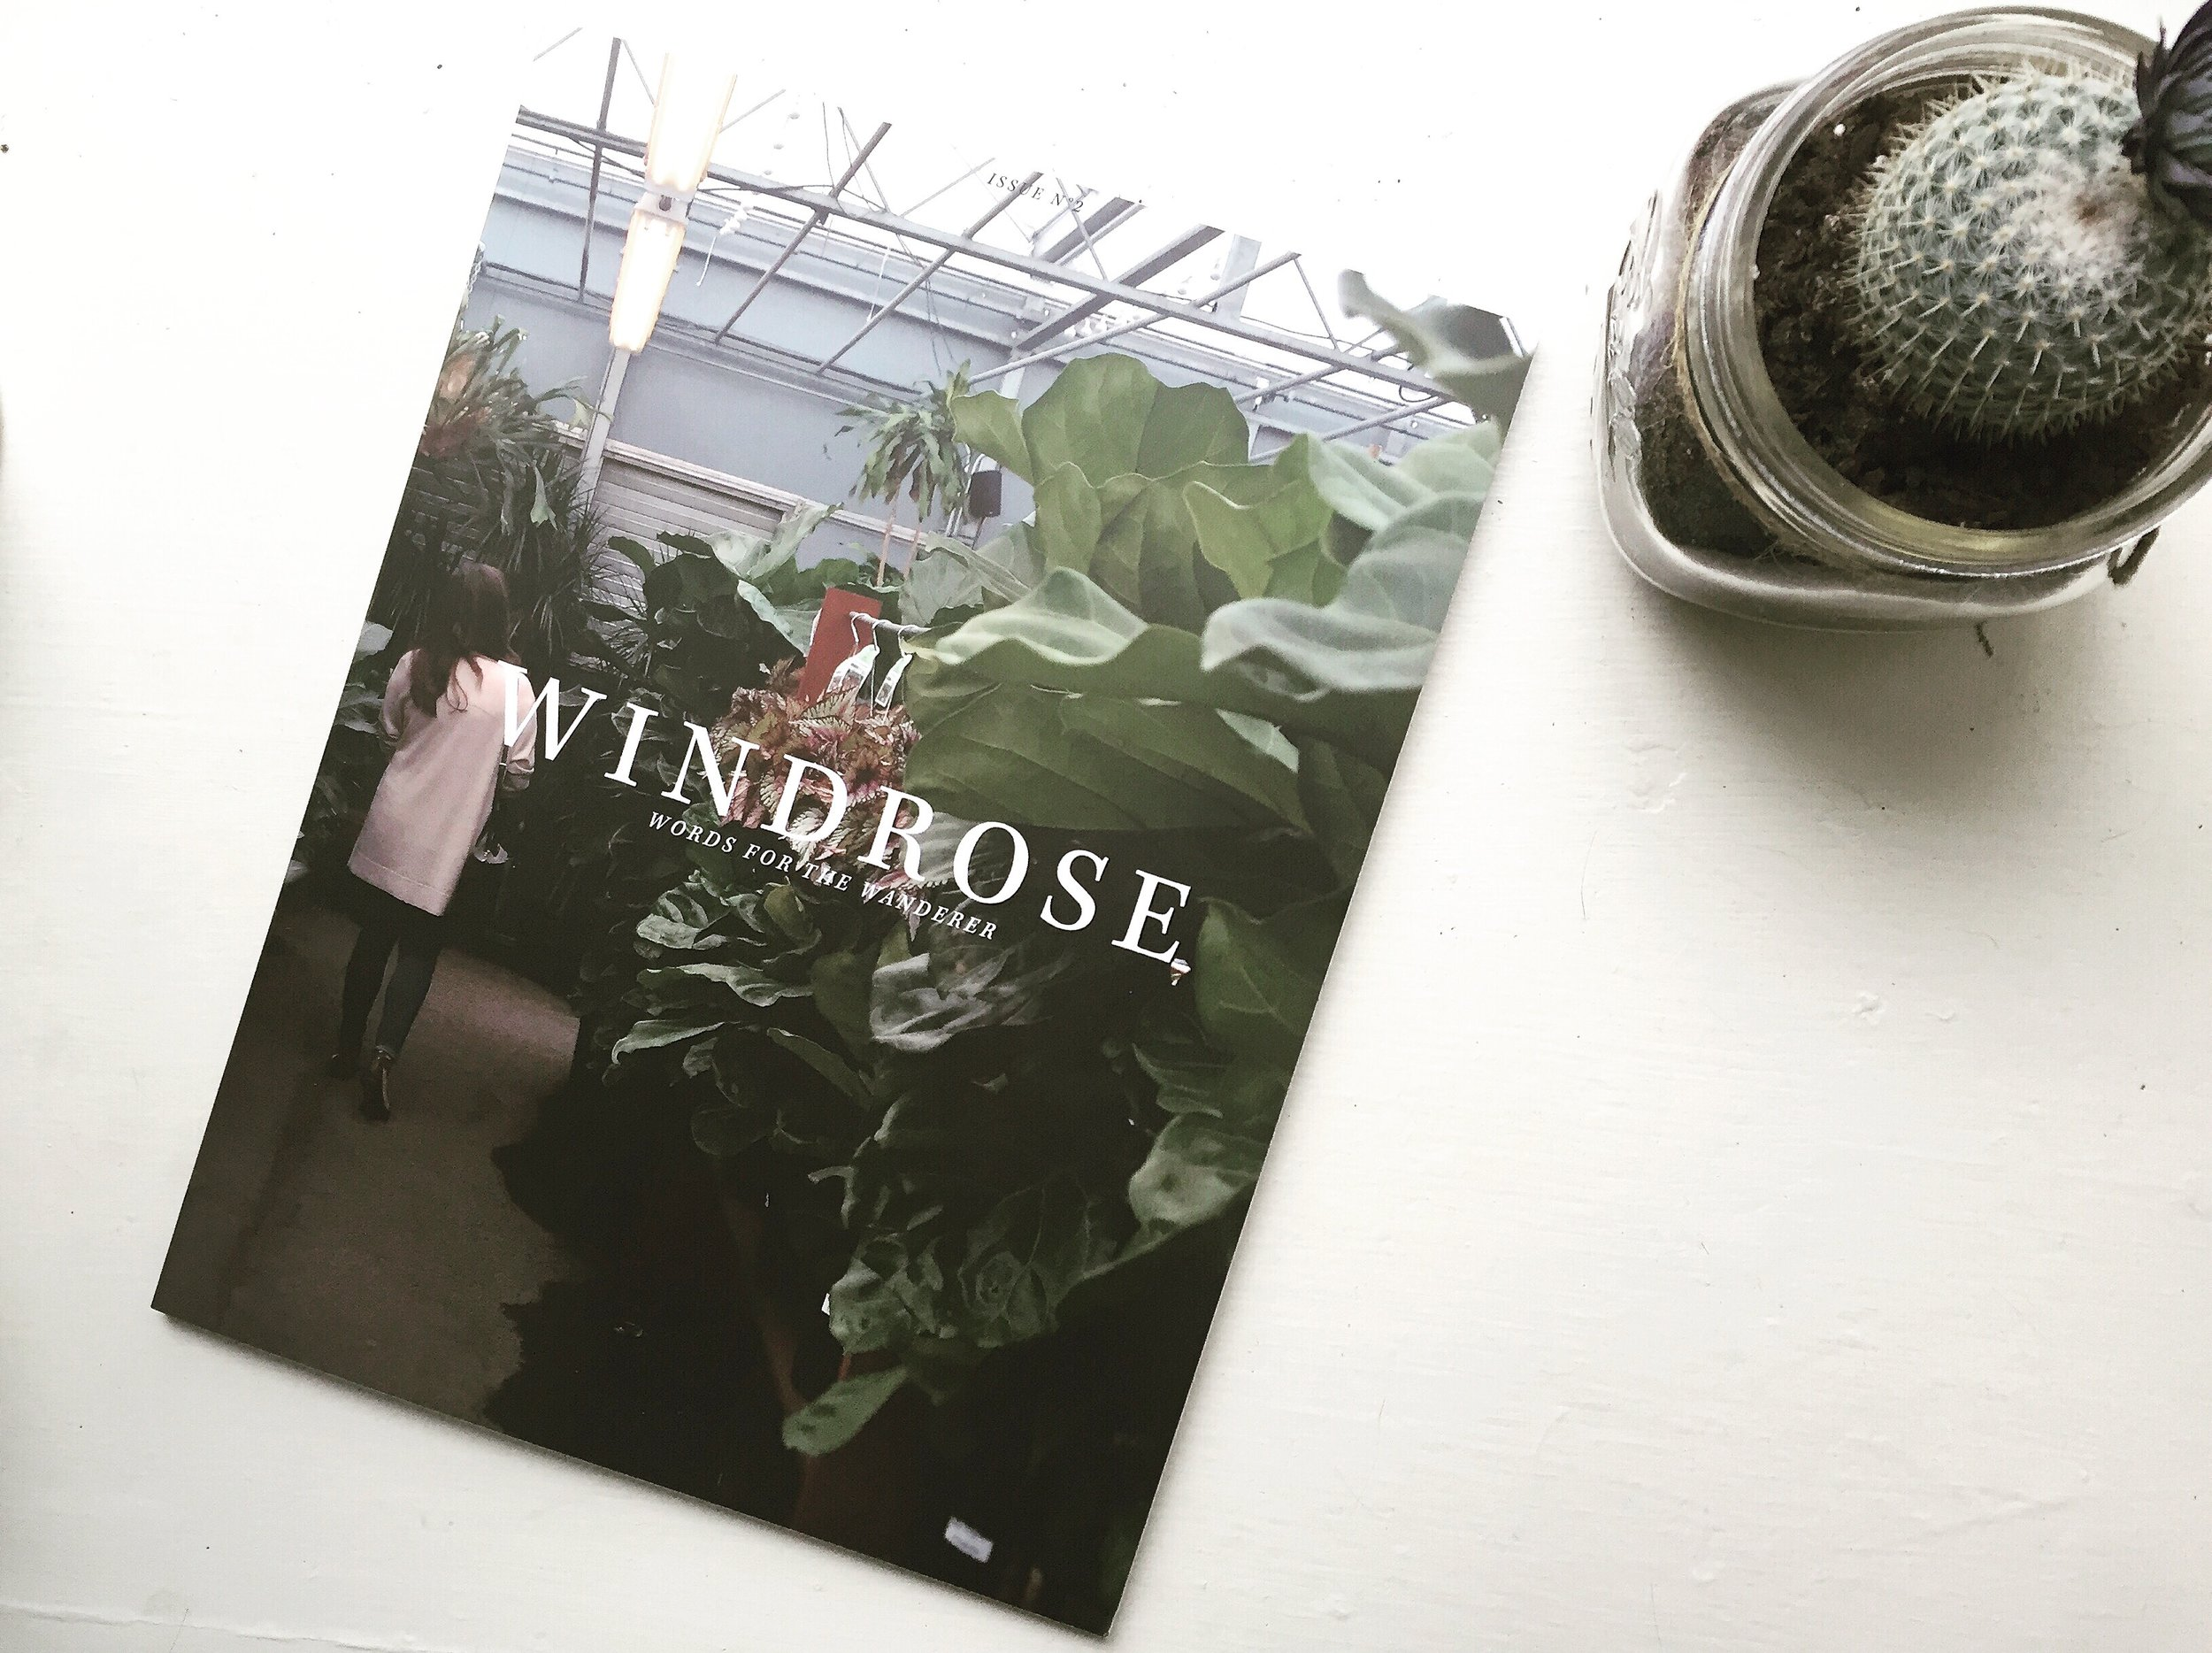 Windrose Magazine Issue 2 with Cactus PHOTO.JPG